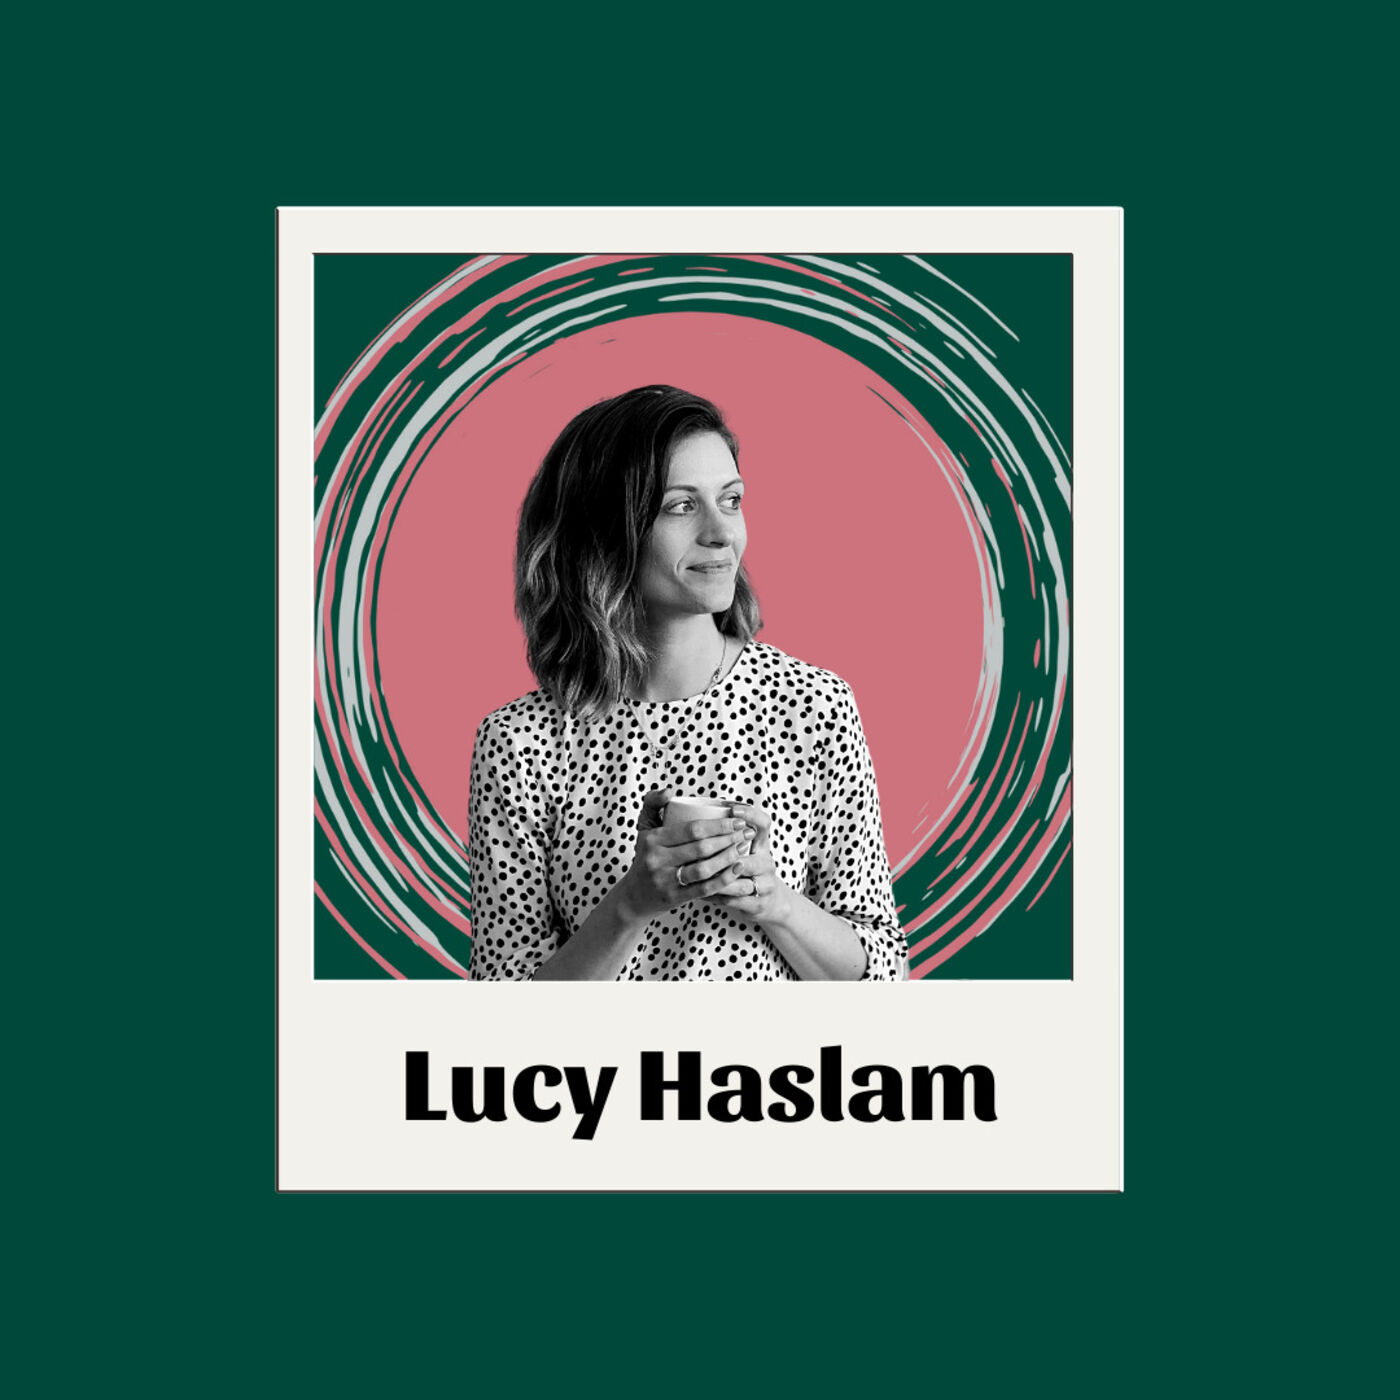 EP18- Lucy Haslam: Dream, Take Risks and Plan For Your Future